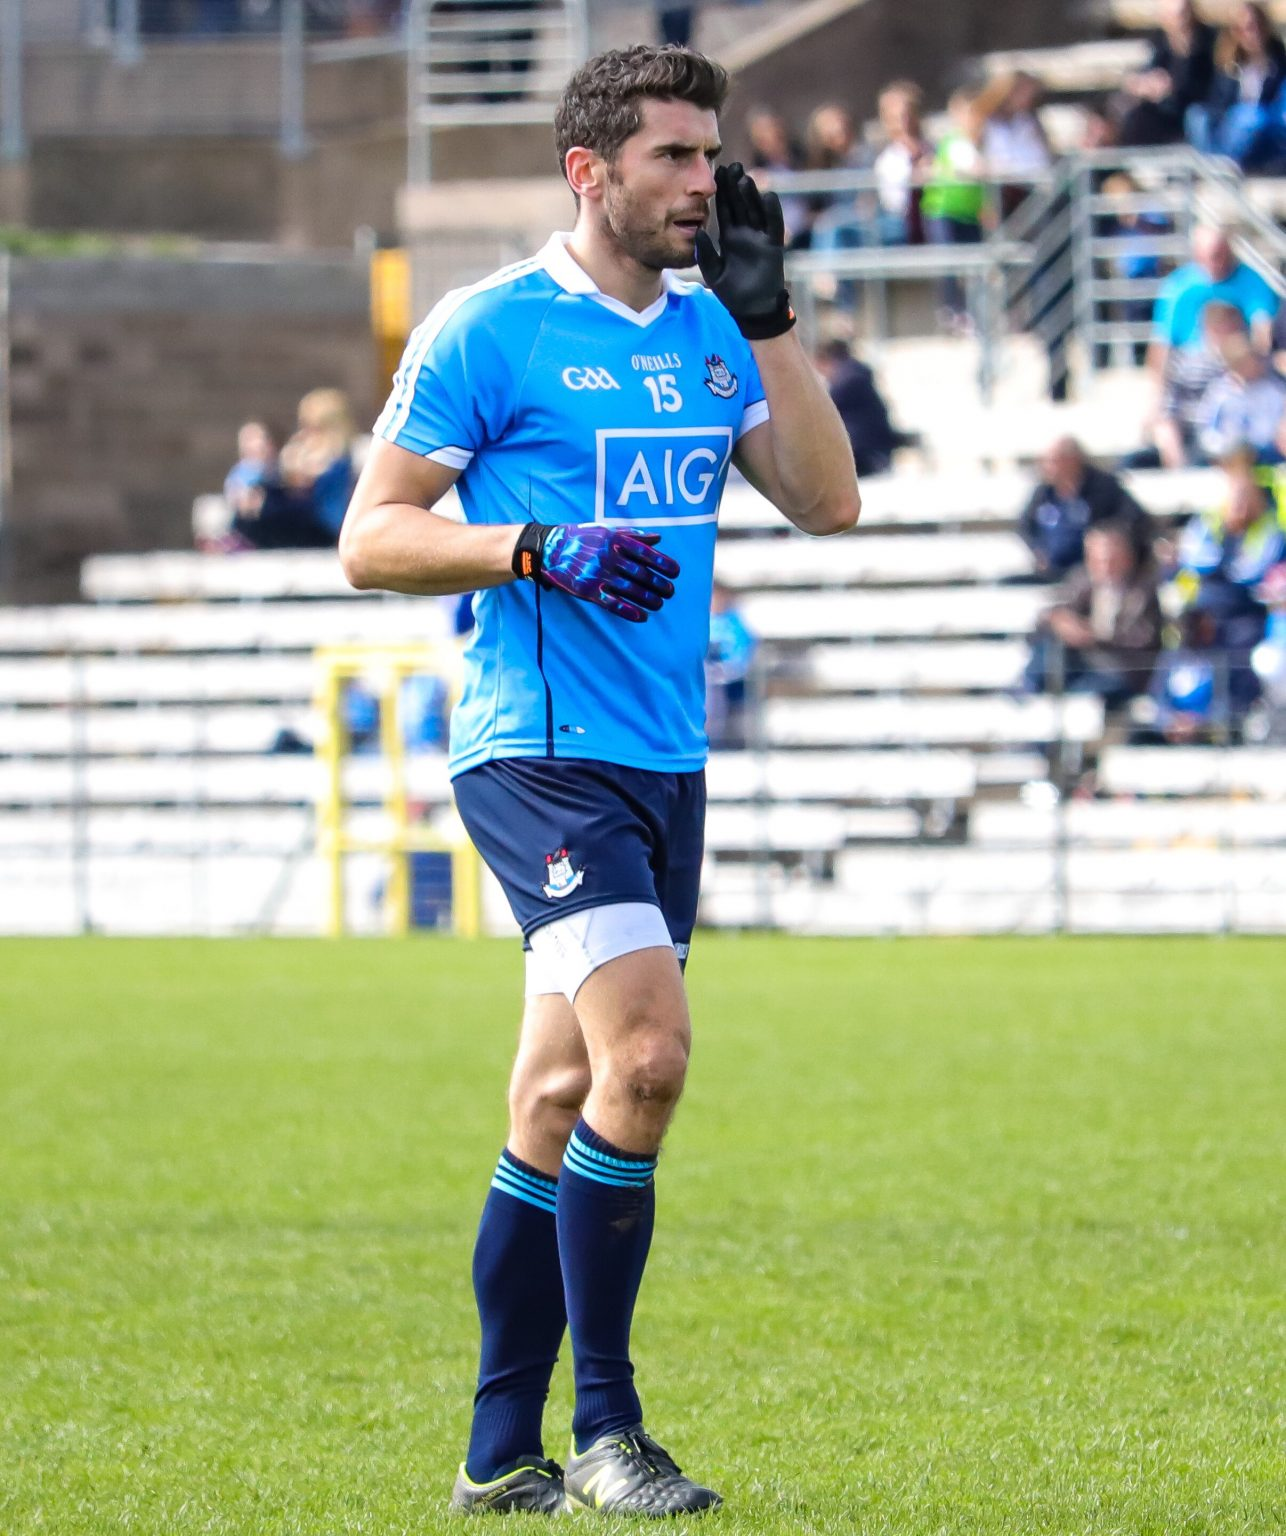 The determination and dedication of Bernard Brogan seen the Dublin footballer pictured above in a Sky Blue Jersey and navy shorts return to action less than six months after a cruciate injury.